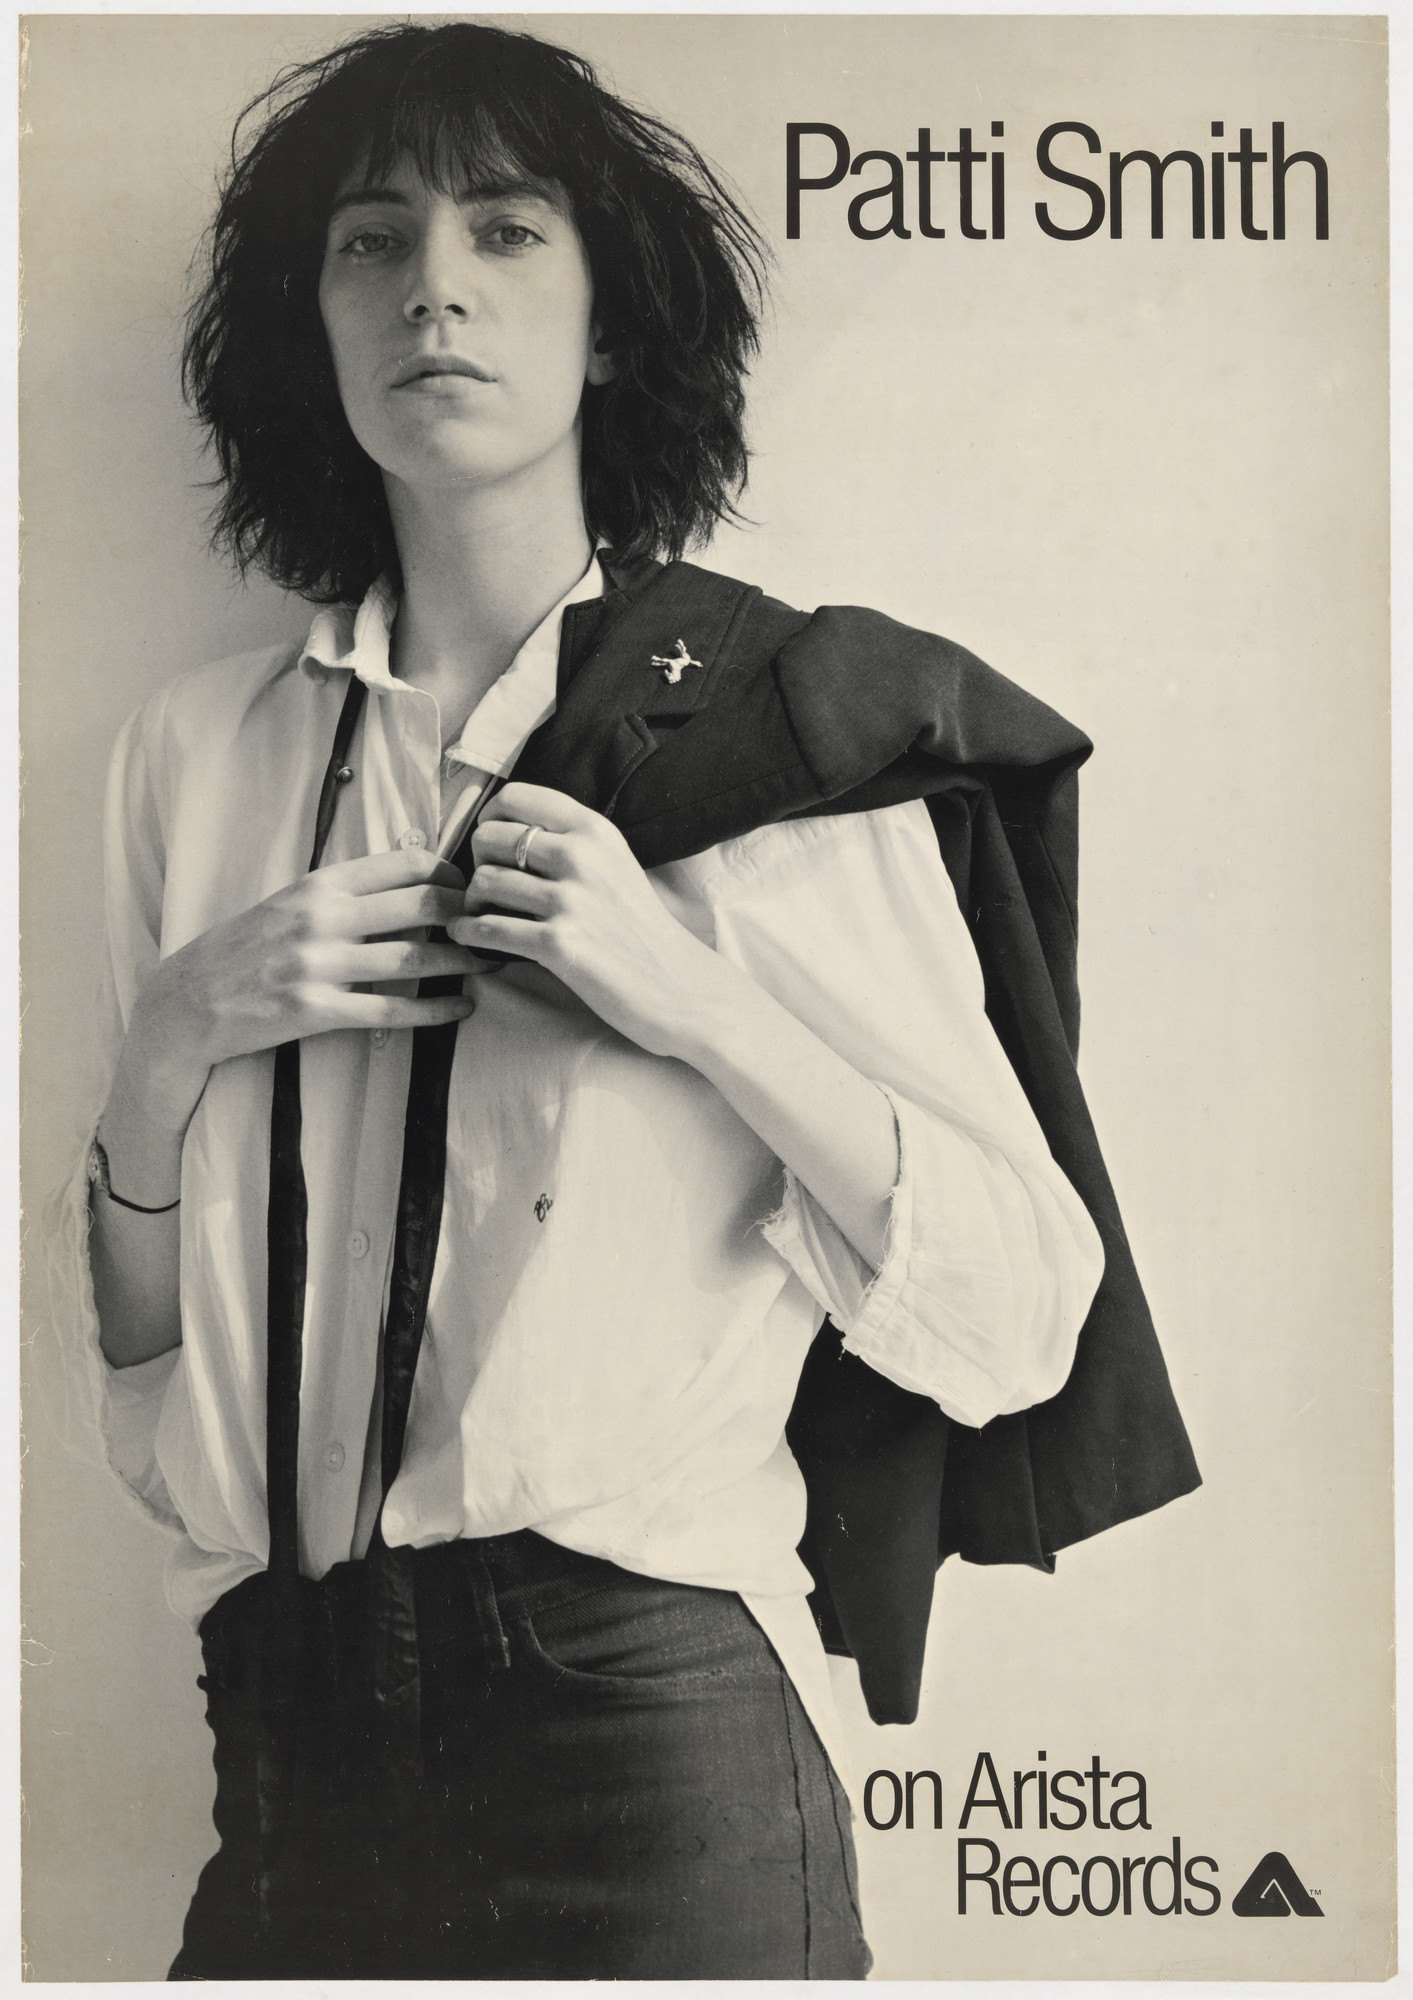 Bob Heimall, Robert Mapplethorpe. Patti Smith, Horses (Poster for album distributed by Arista Records, New York). 1975